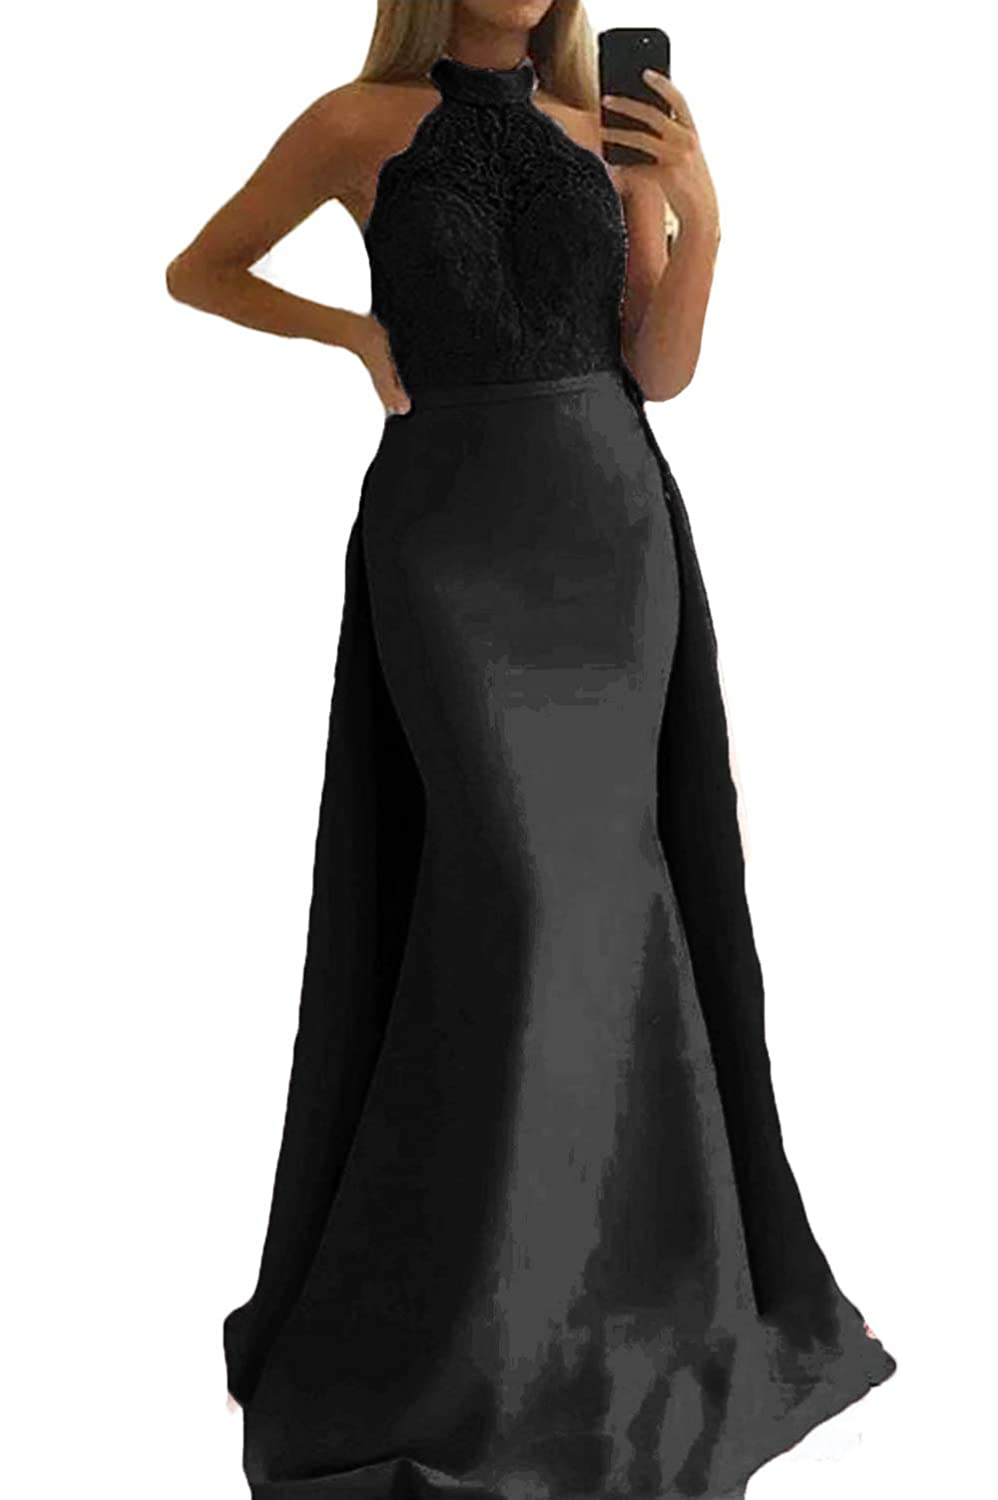 Black WZW Mermaid Prom Dresses with Over Train Long Formal Arabic Evening Party Gowns Special Occasion Dress